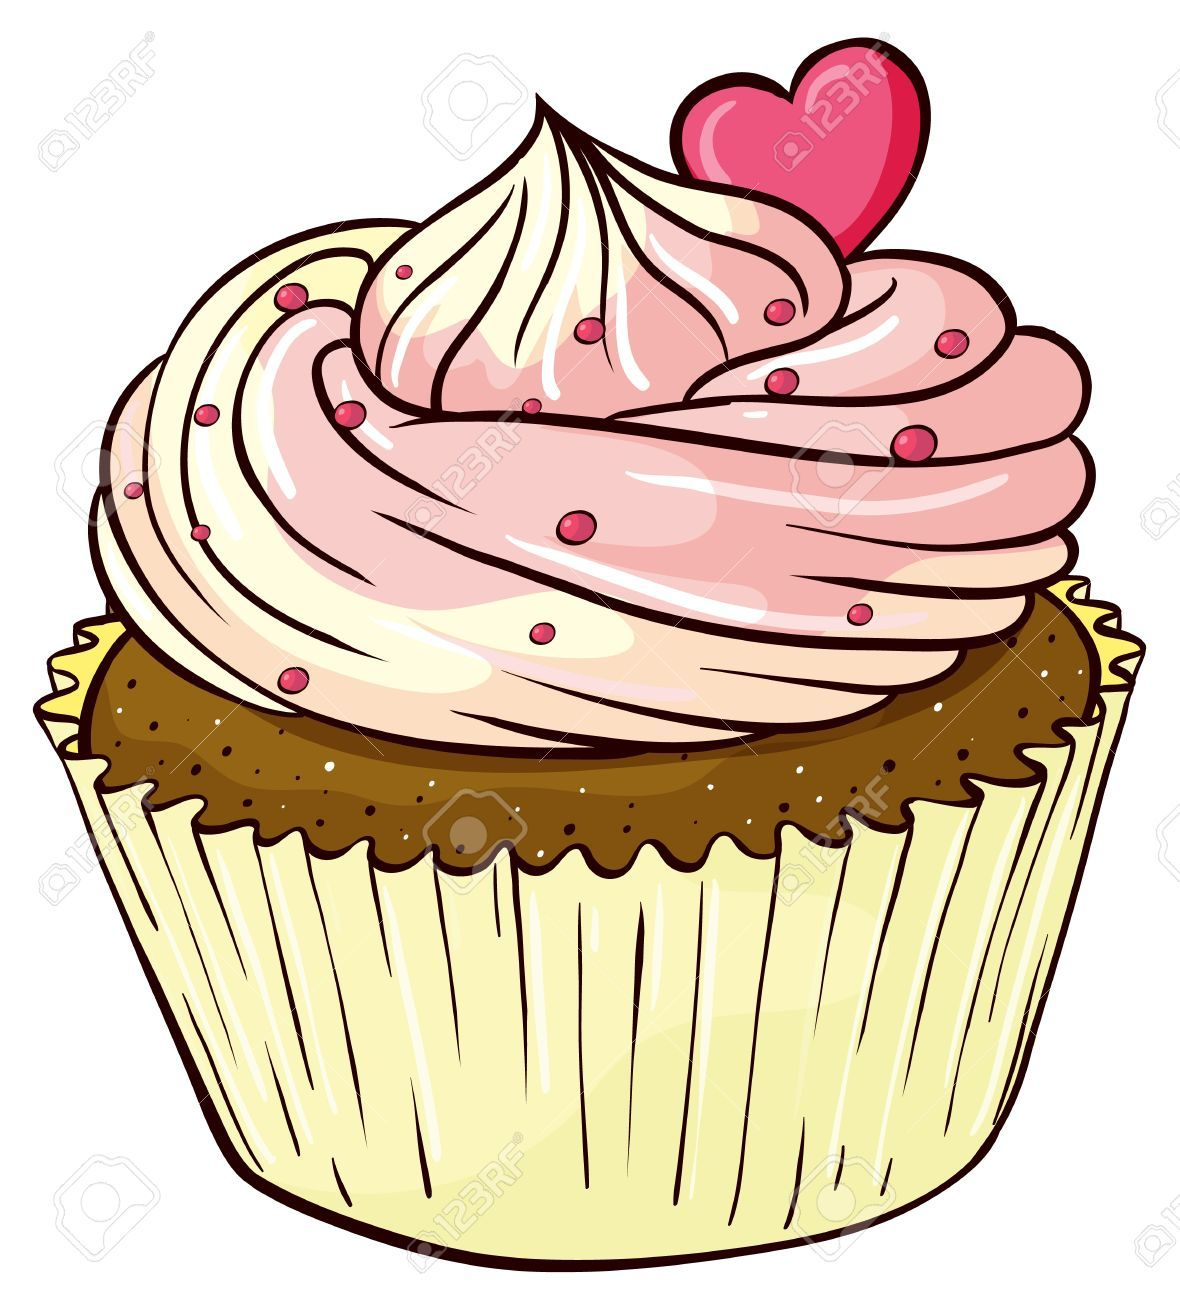 hight resolution of cupcake clipart stock photos images royalty free cupcake clipart